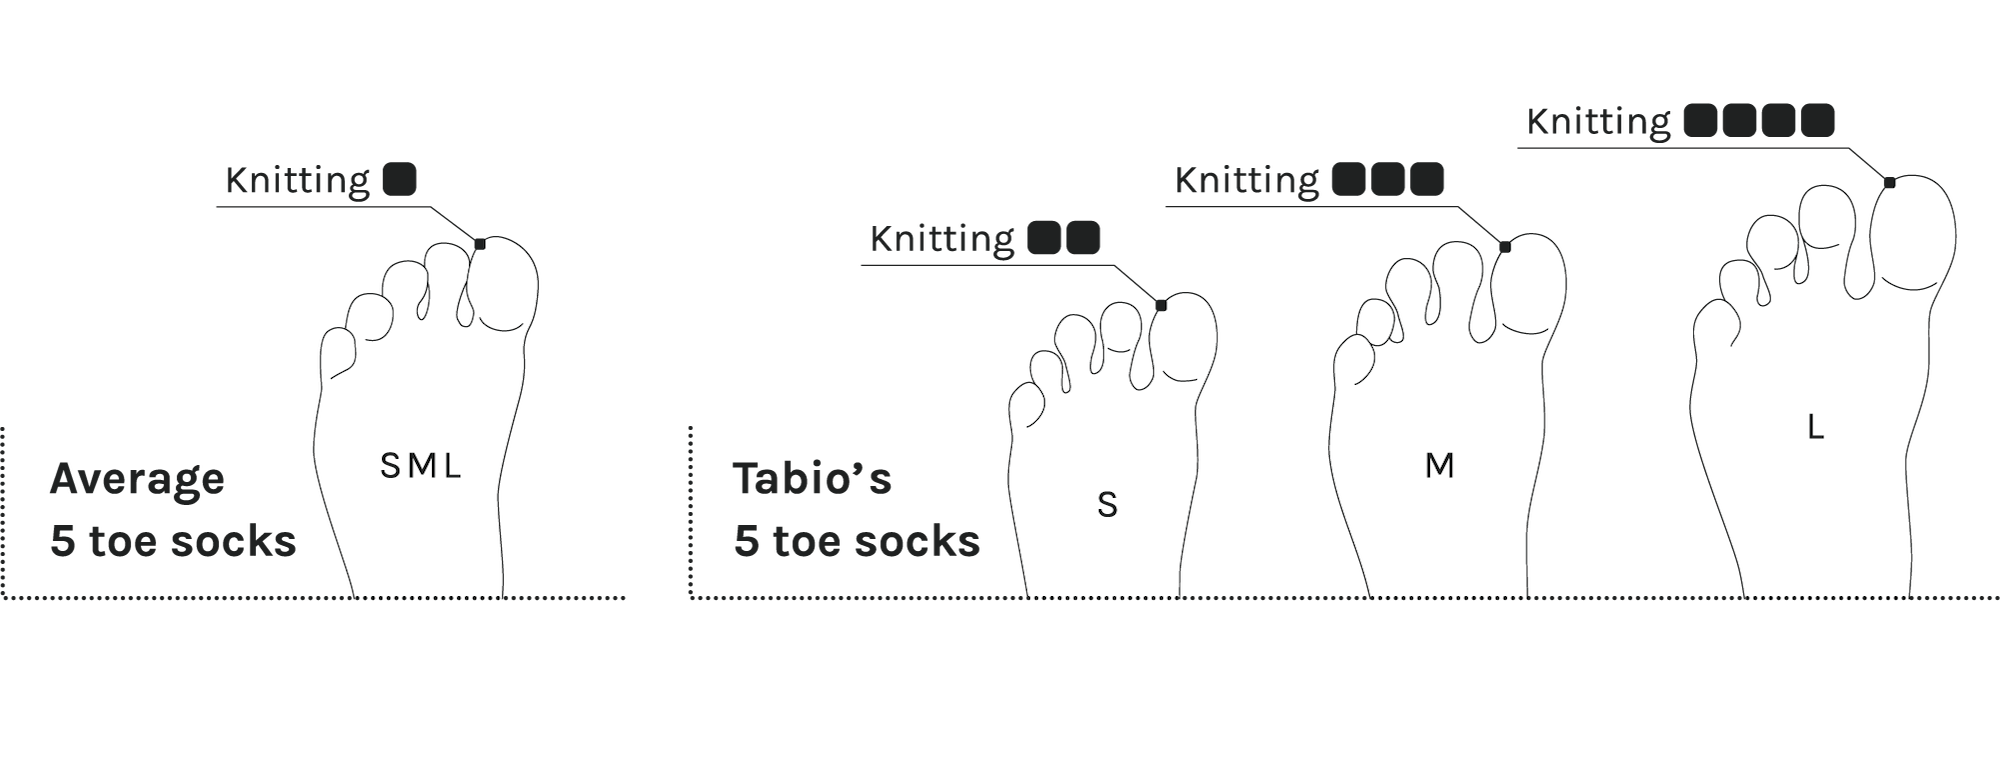 Tabio's toe socks care about how they fit on you